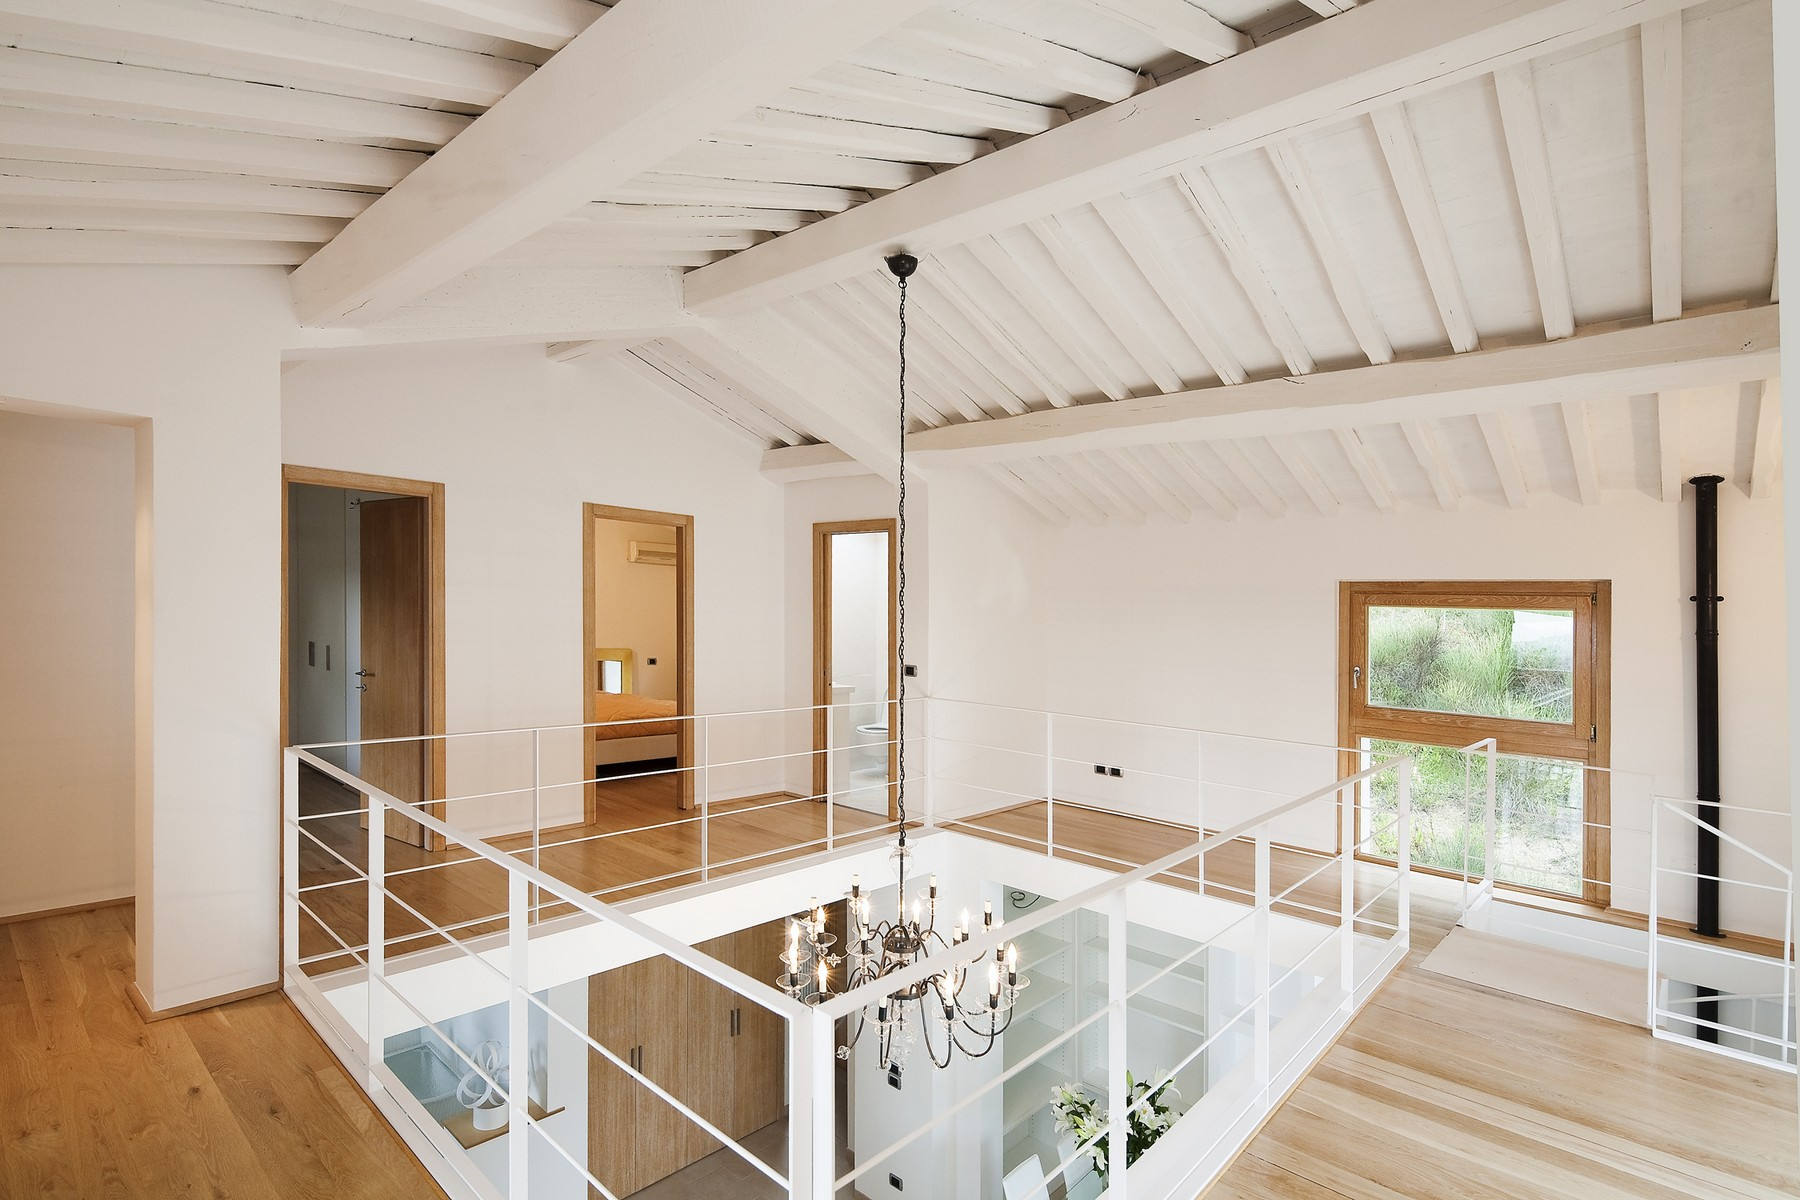 Additional photo for property listing at Design house overlooking Perugia Montelaguardia Perugia, Perugia 06135 Italie